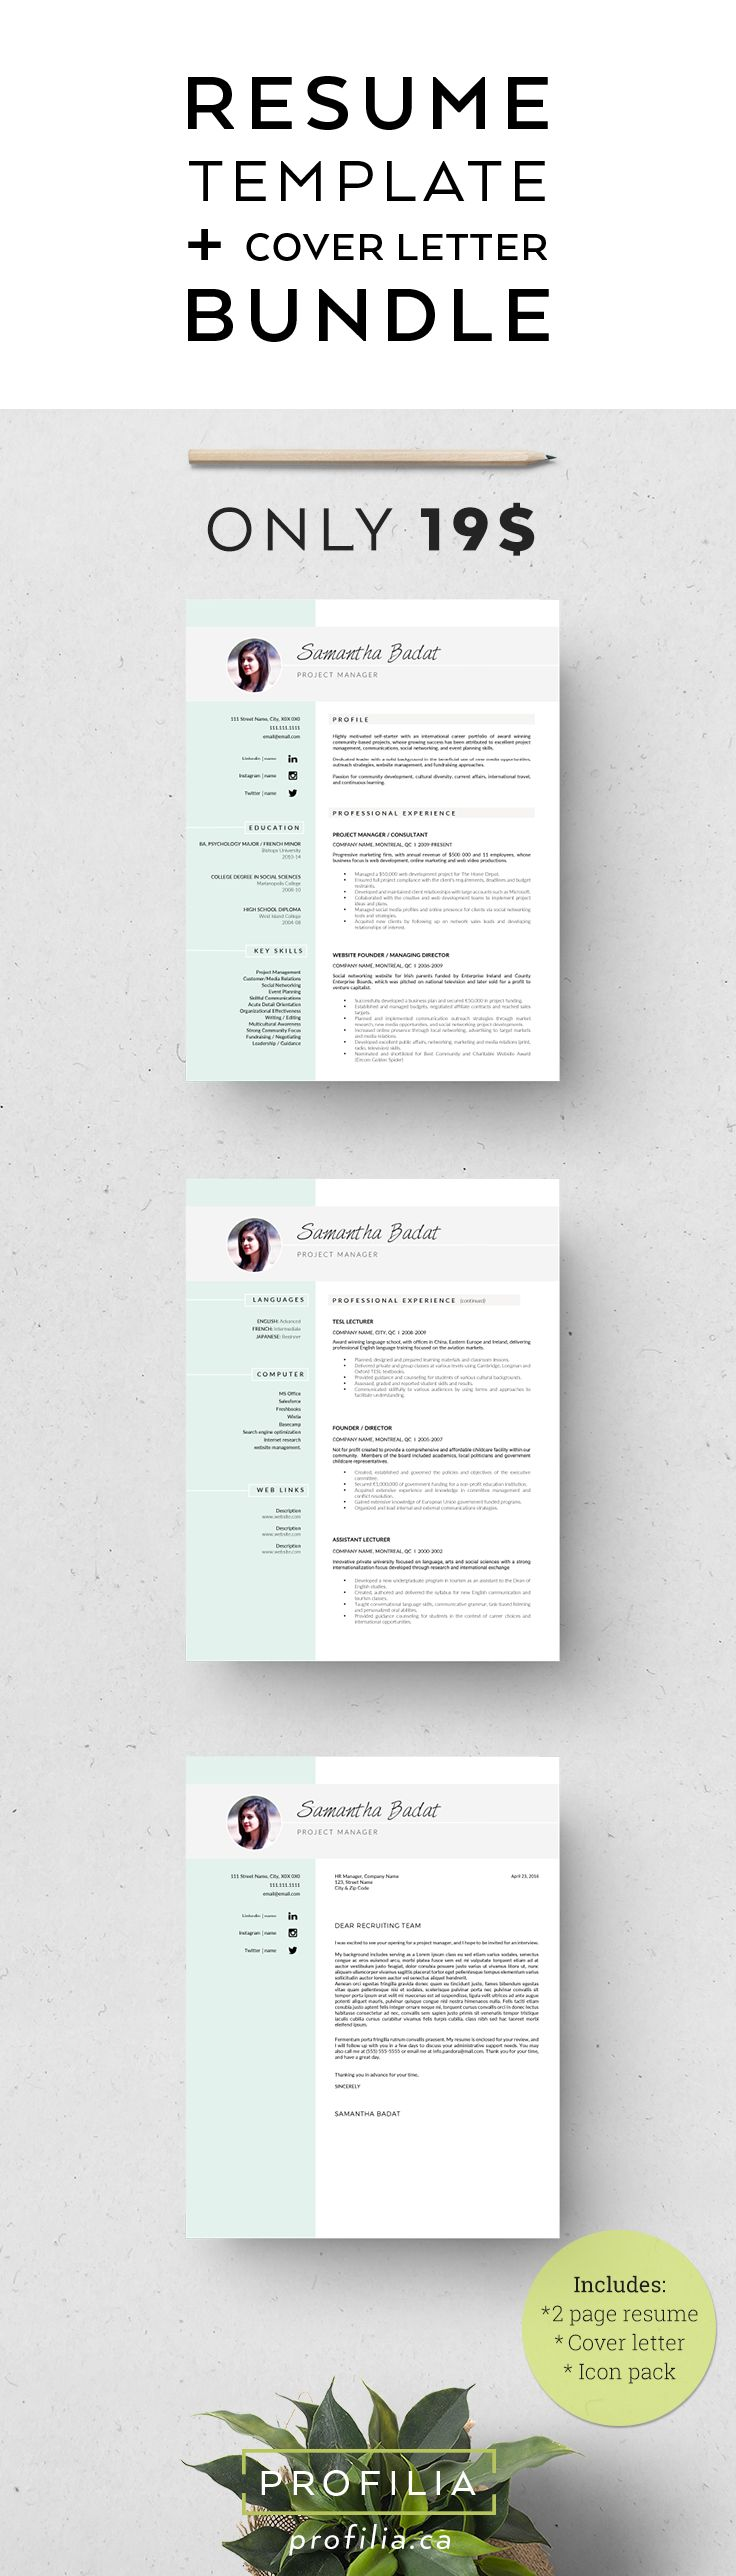 Modern Resume u0026 Cover Letter Template